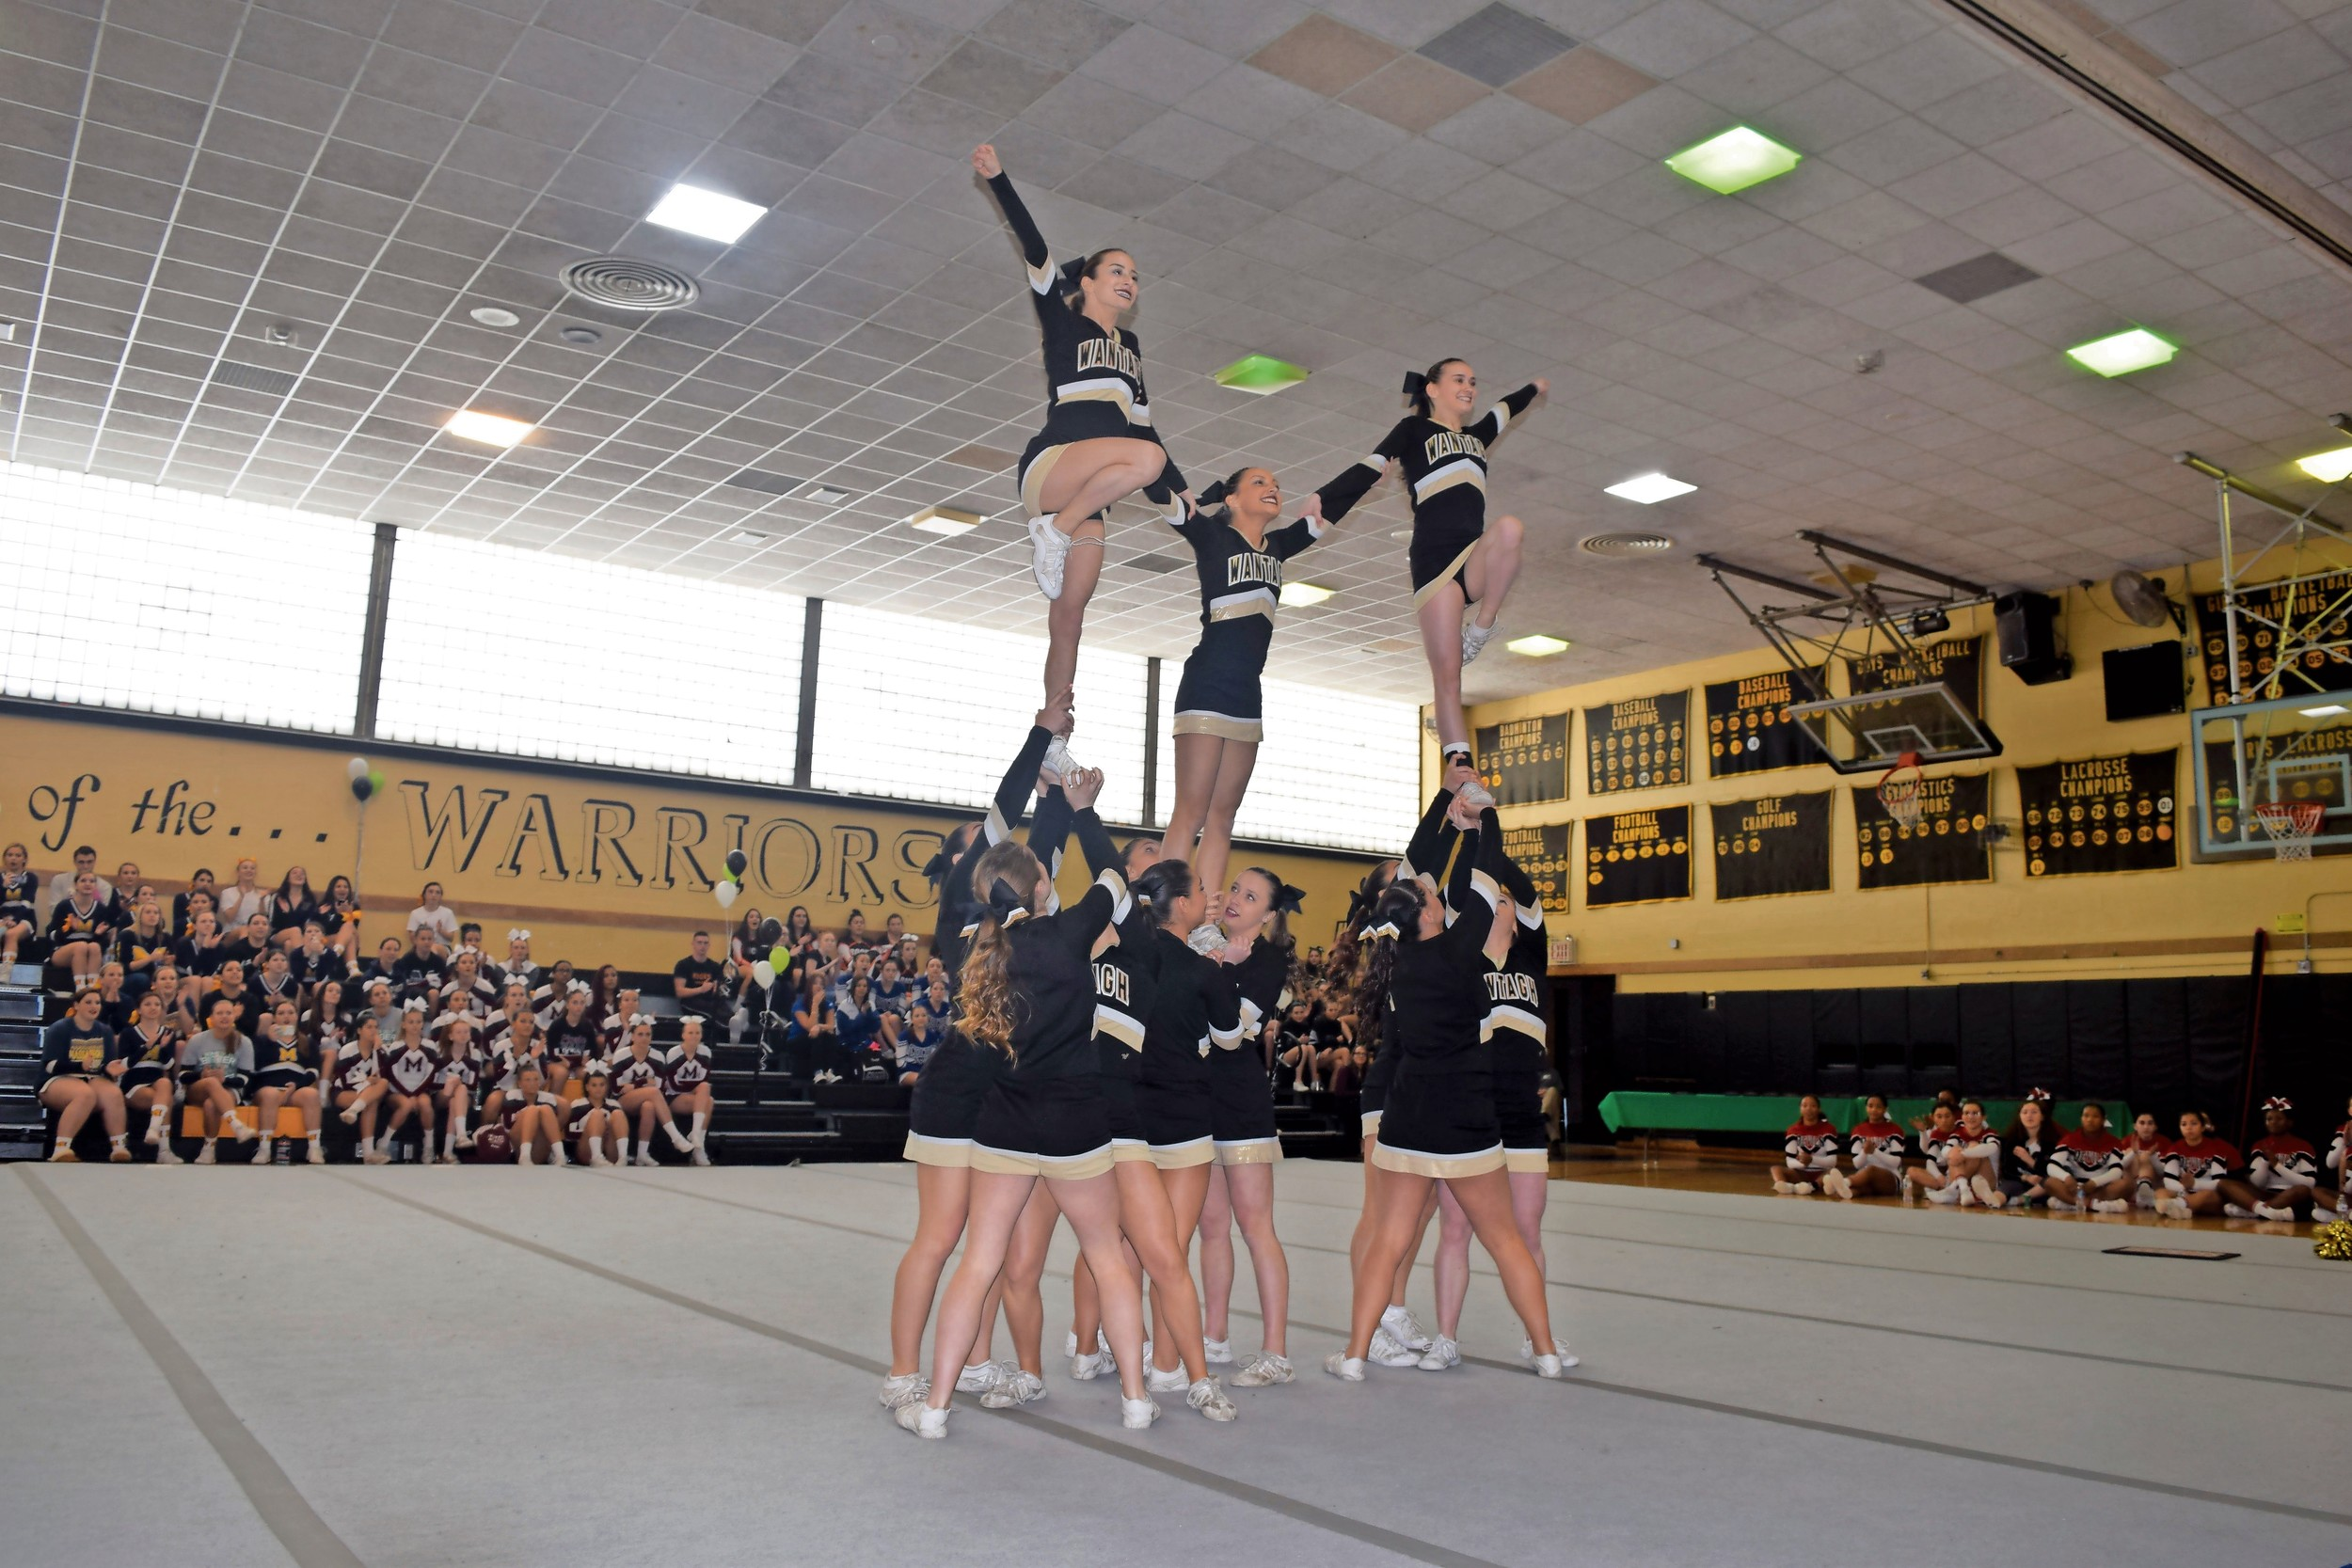 The Wantagh High School varsity cheerleading team won a county championship last weekend in front of the hometown crowd. The squad also placed sixth at the Universal Cheerleading Association's National High School Cheerleading Championship last month.